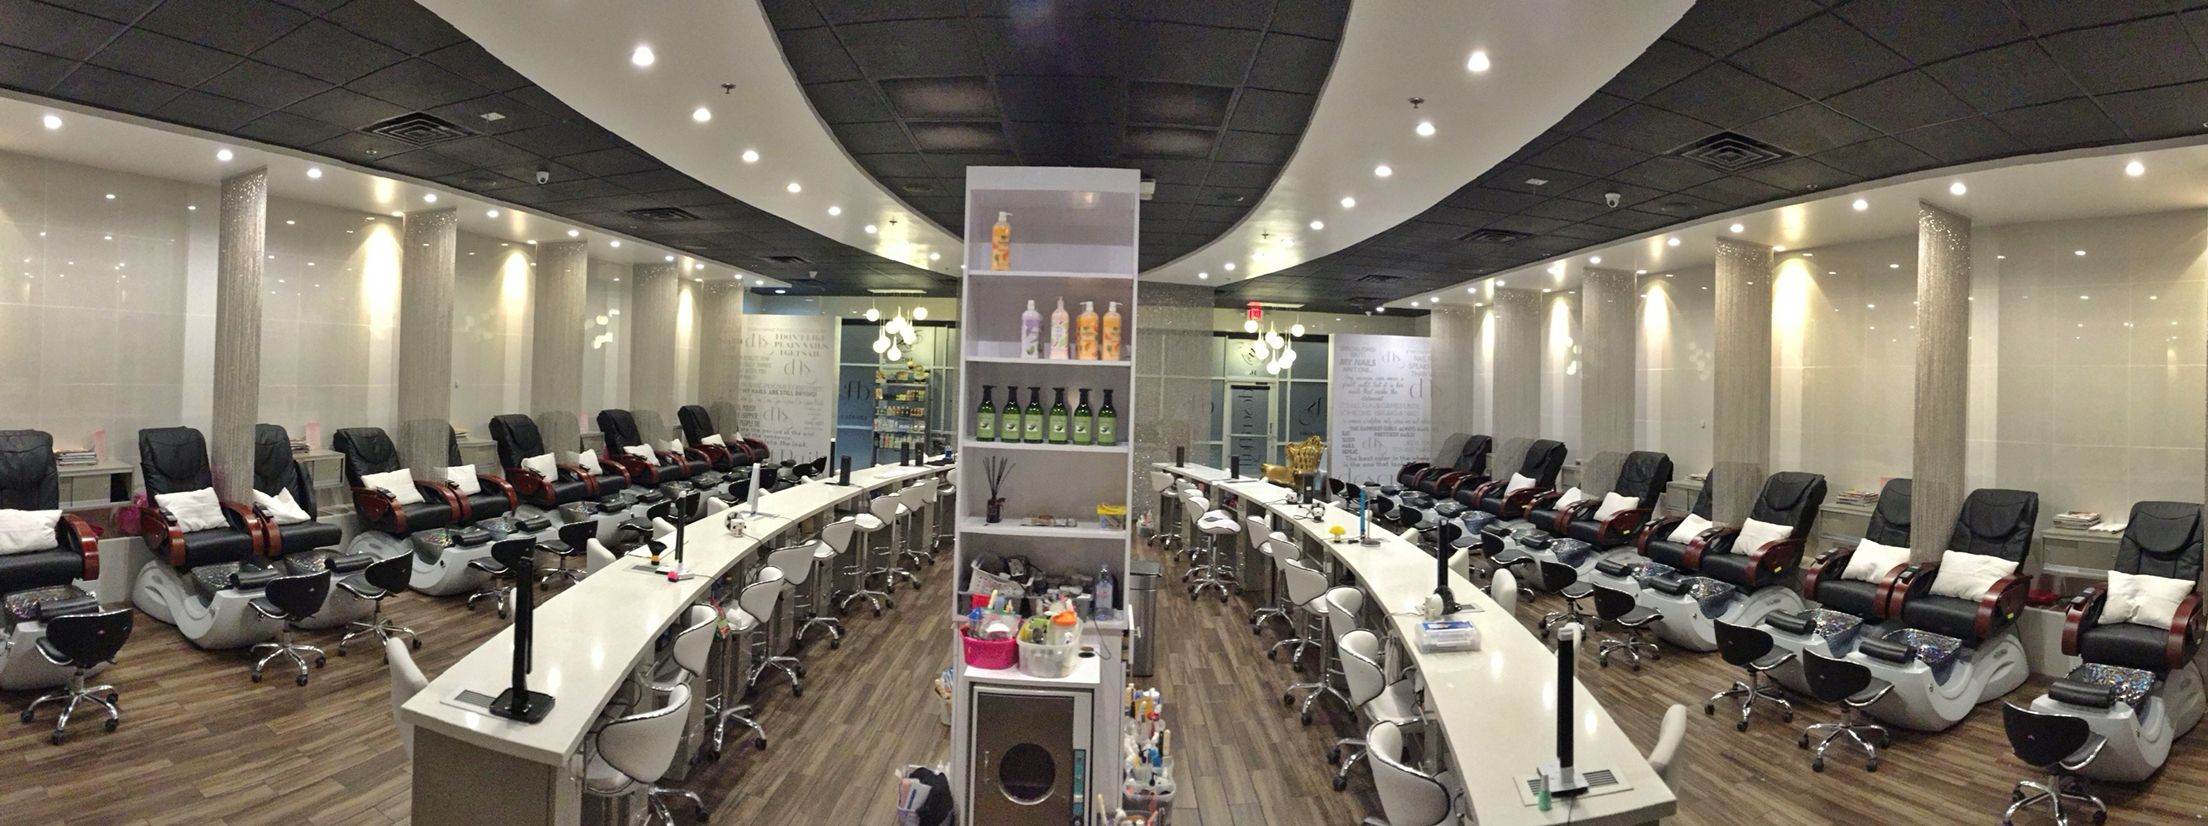 Desert Nail Spa in Scottsdale AZ with our Cleo GX Pedicure Spa ...